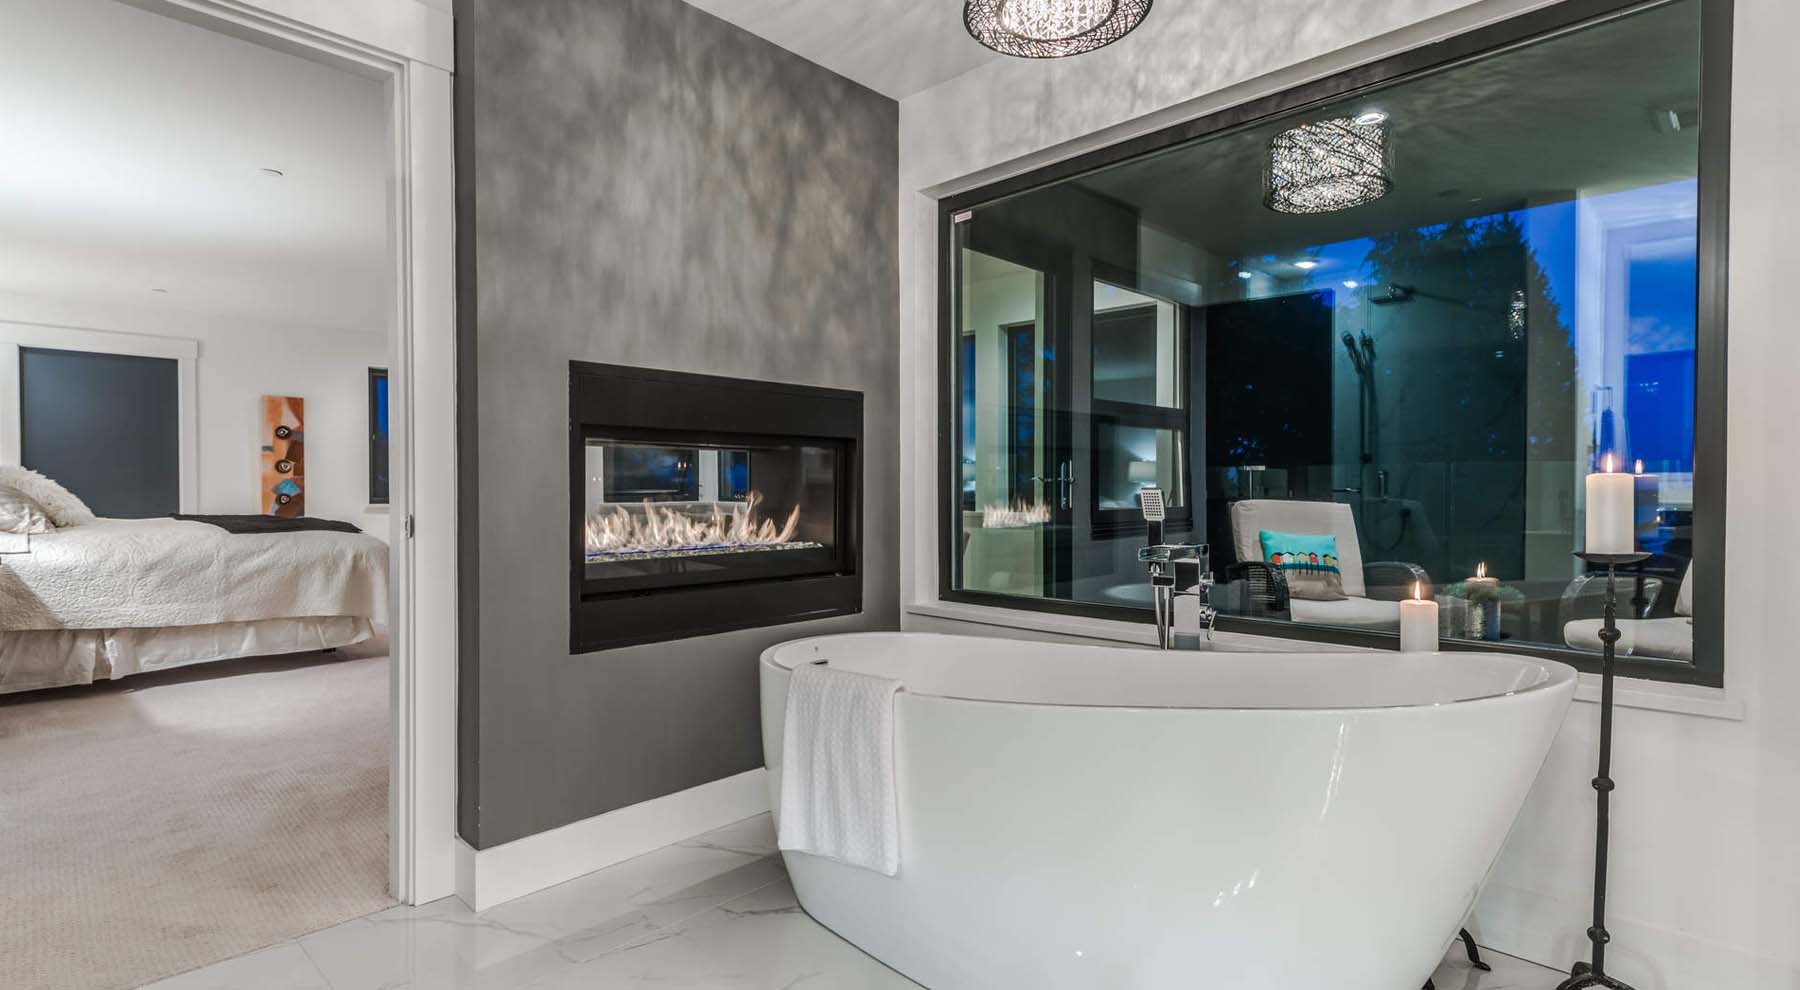 Modern master bathroom with built in double sided gas fireplace next to a free standing tub.